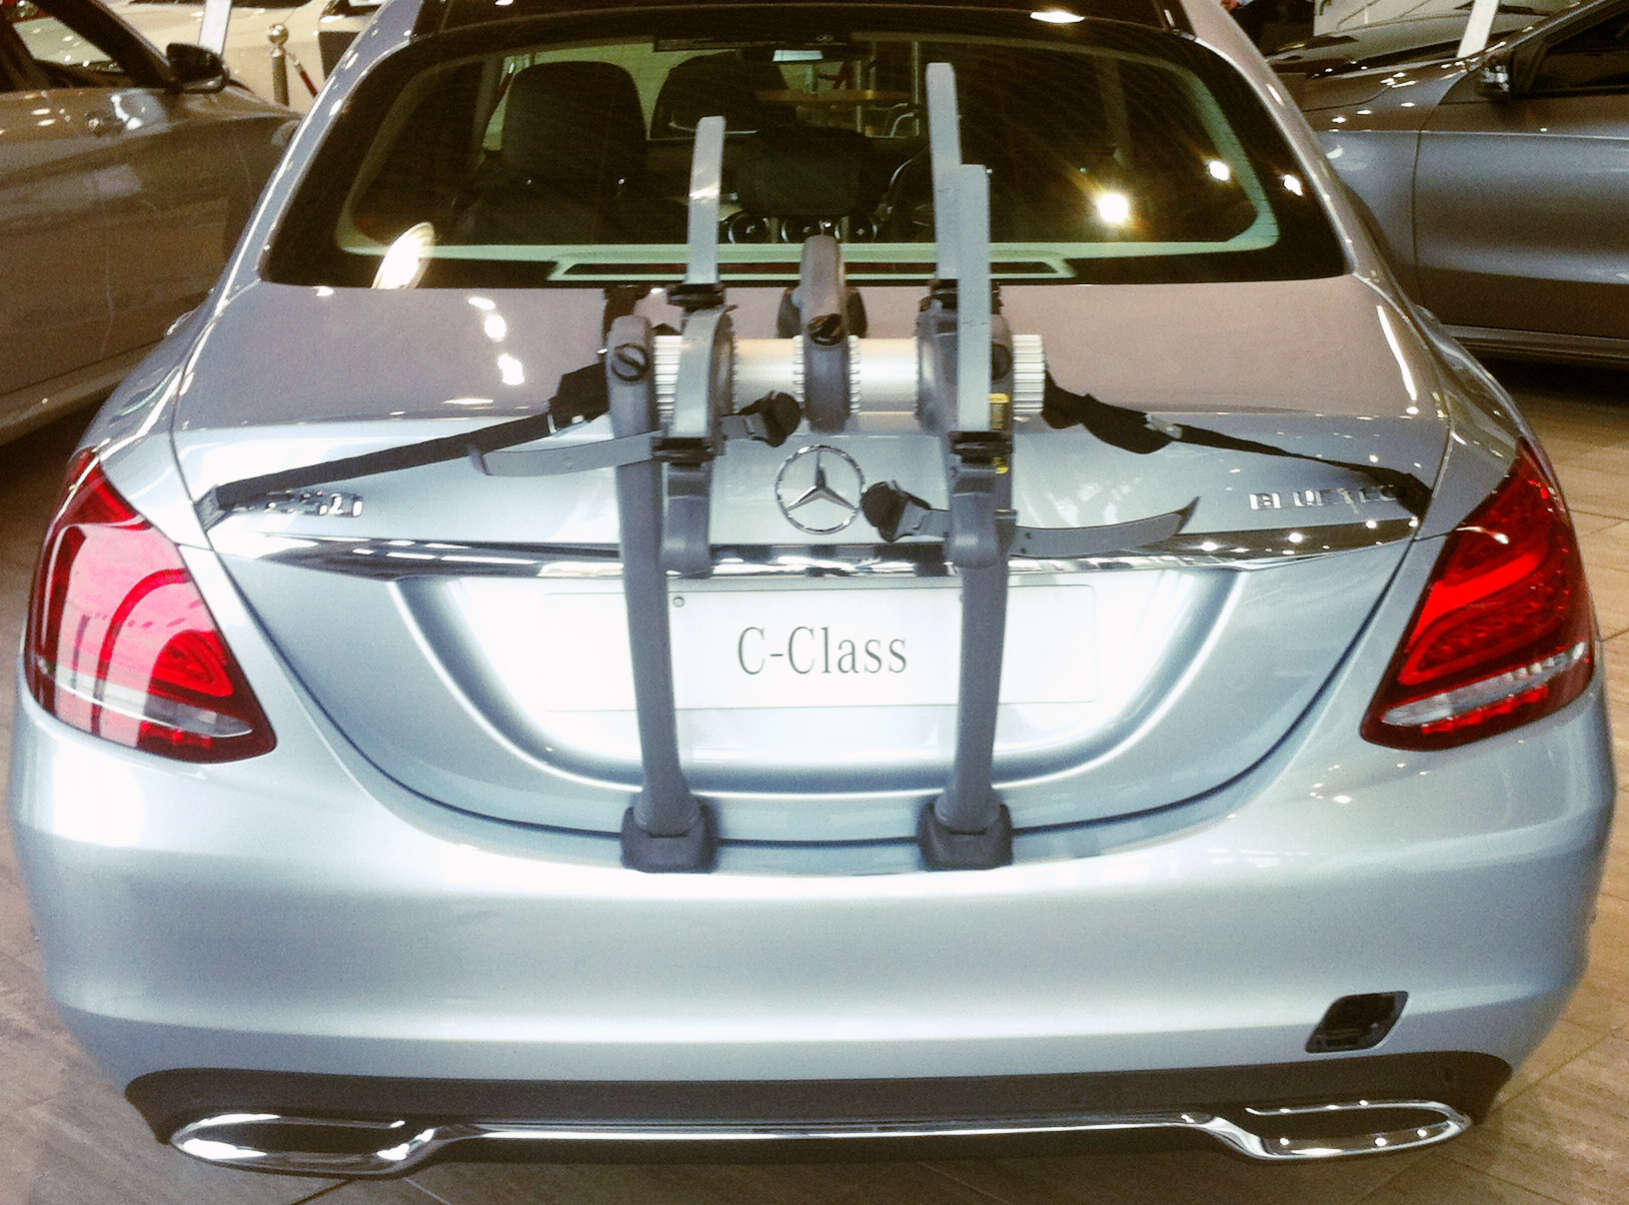 Mercedes c class saloon bike rack modern arc based design for Mercedes benz bicycle rack